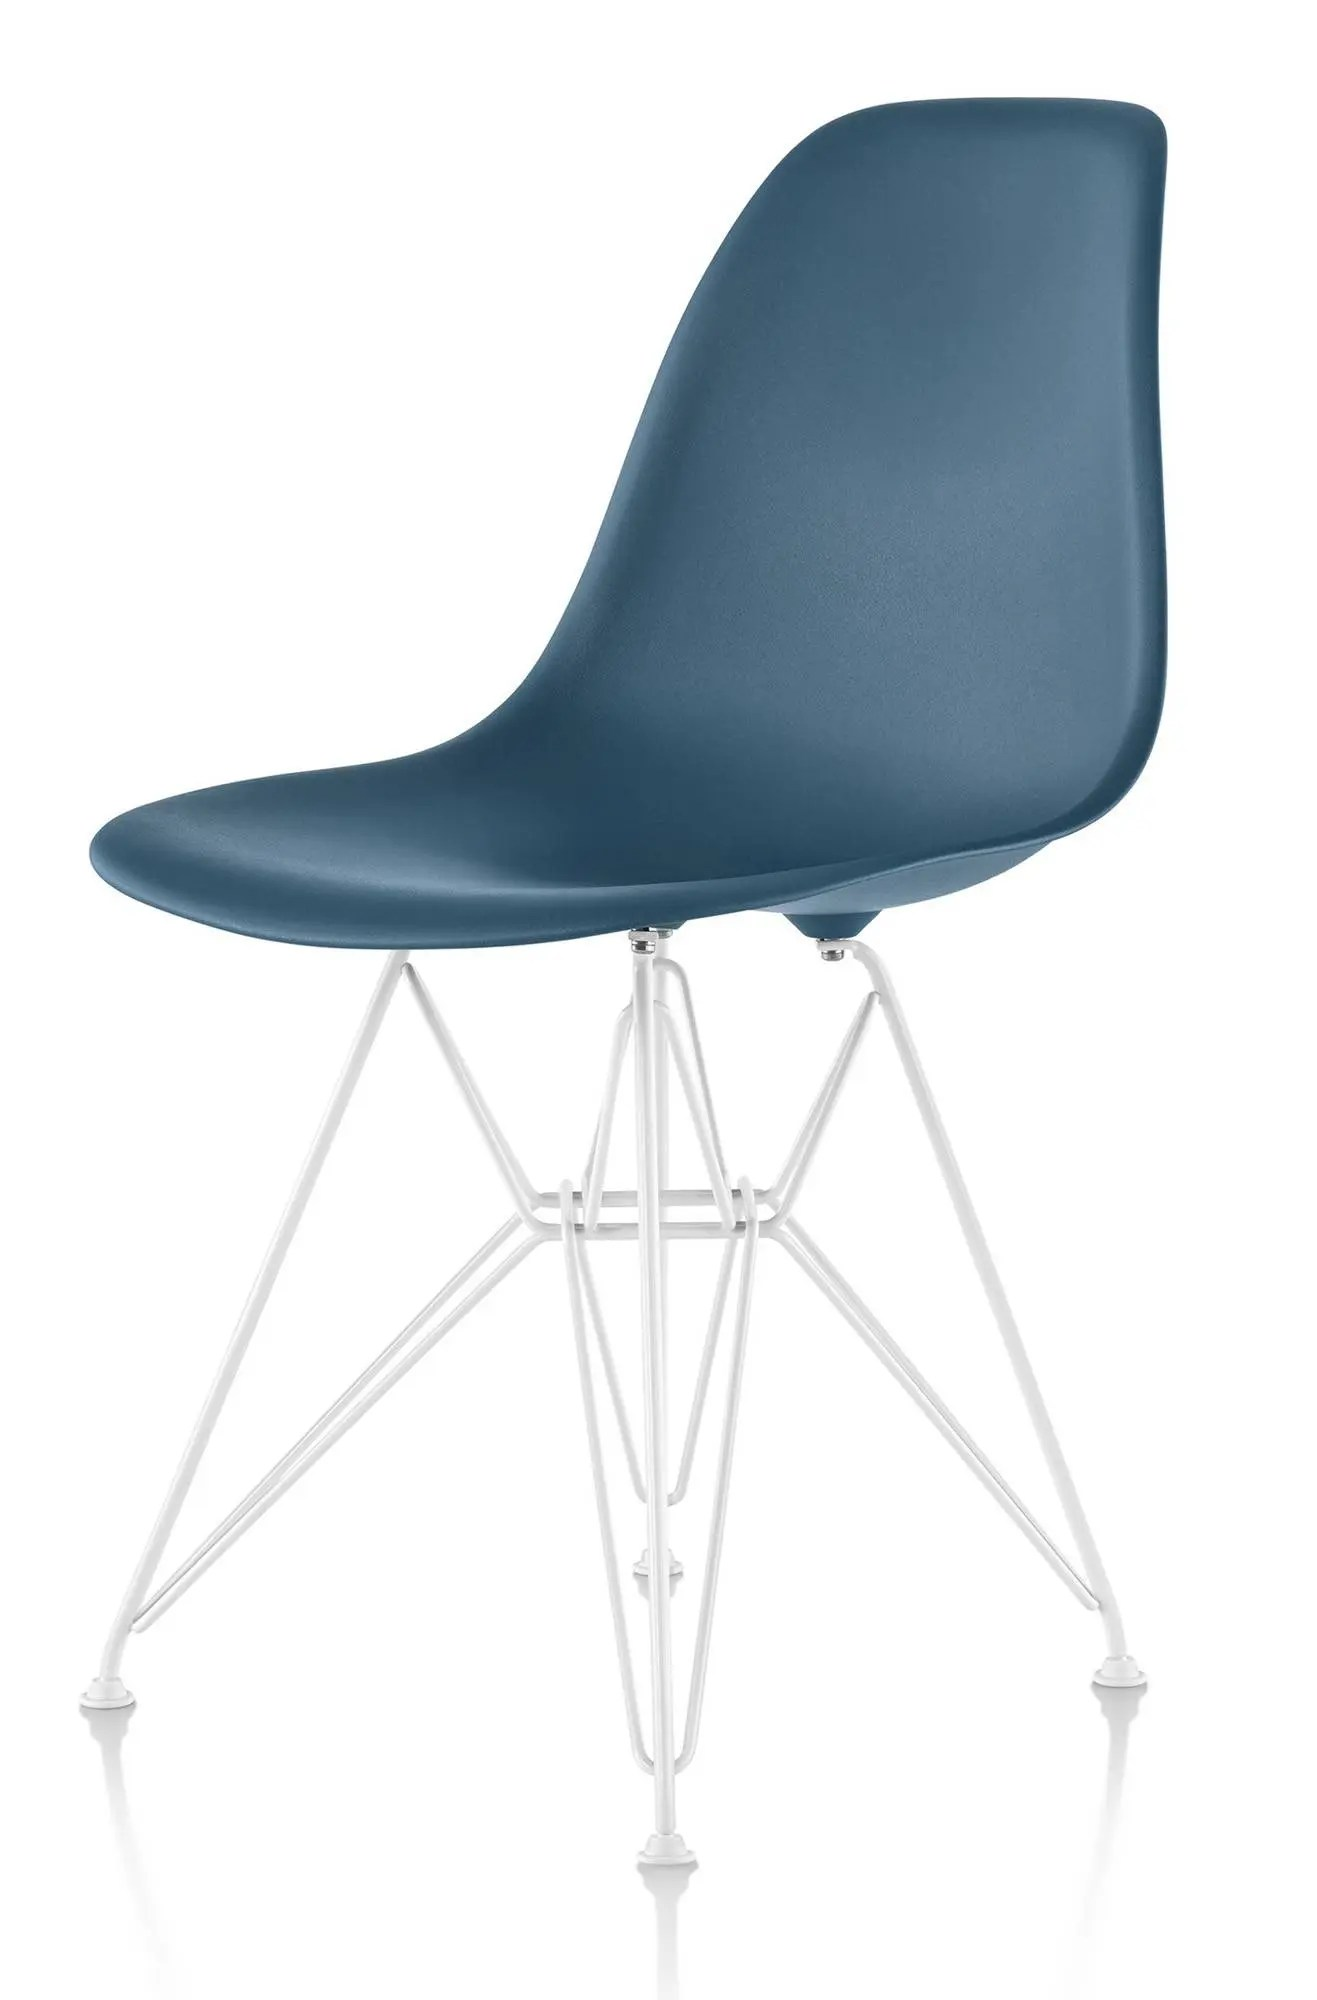 Eames Molded Plastic Chair Knockoff Herman Miller Eames Molded Plastic Side Chair Gr Shop